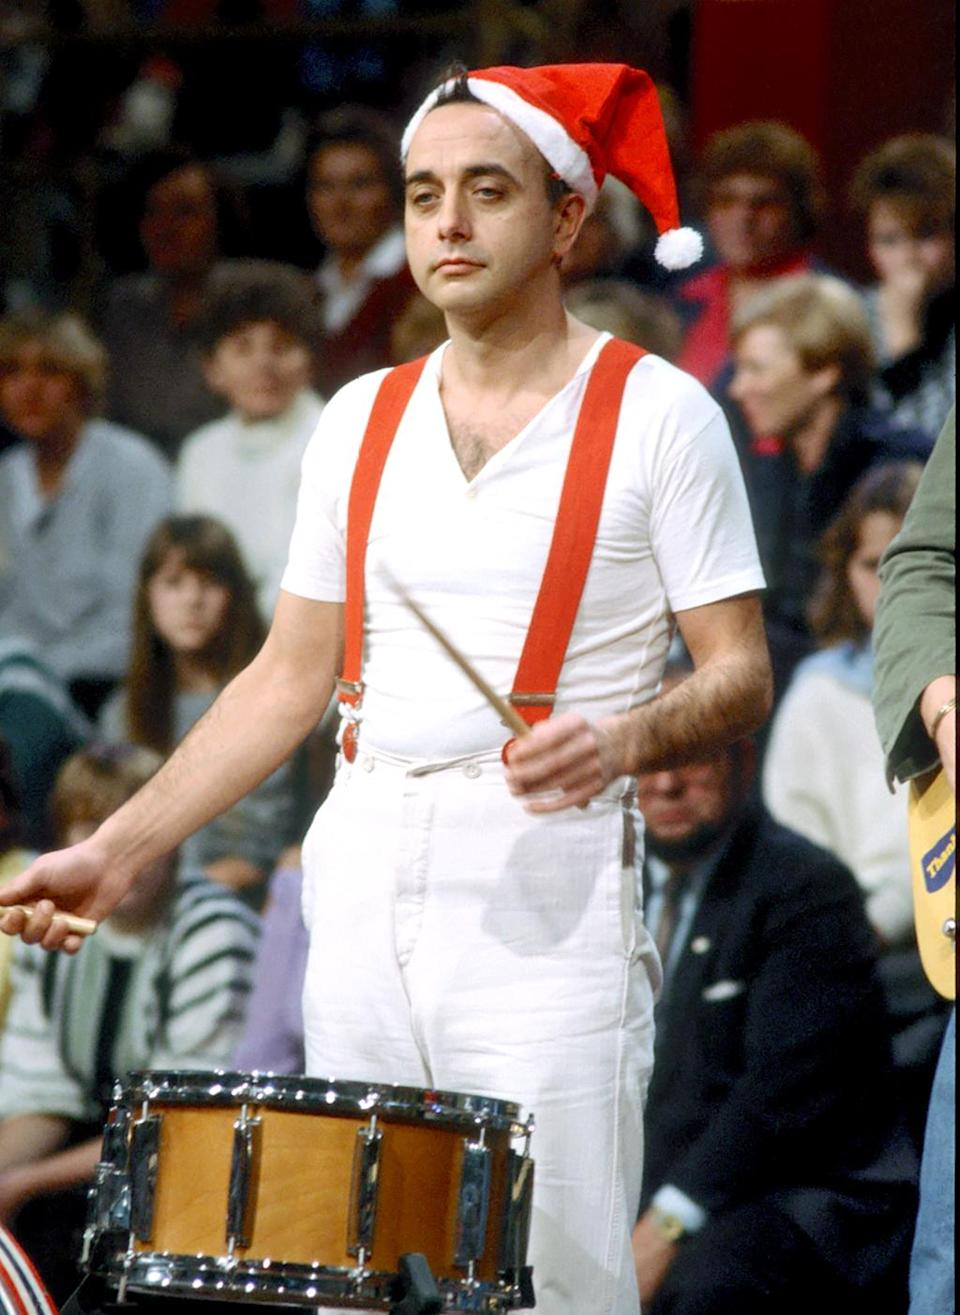 """Peter Behrens was a German musician best known as the drummer for the band Trio, who scored a massive international new wave hit in 1982 with """"Da Da Da."""" He died of multiple organ failure on May 11, at the age of 68. (Photo: Getty Images)"""